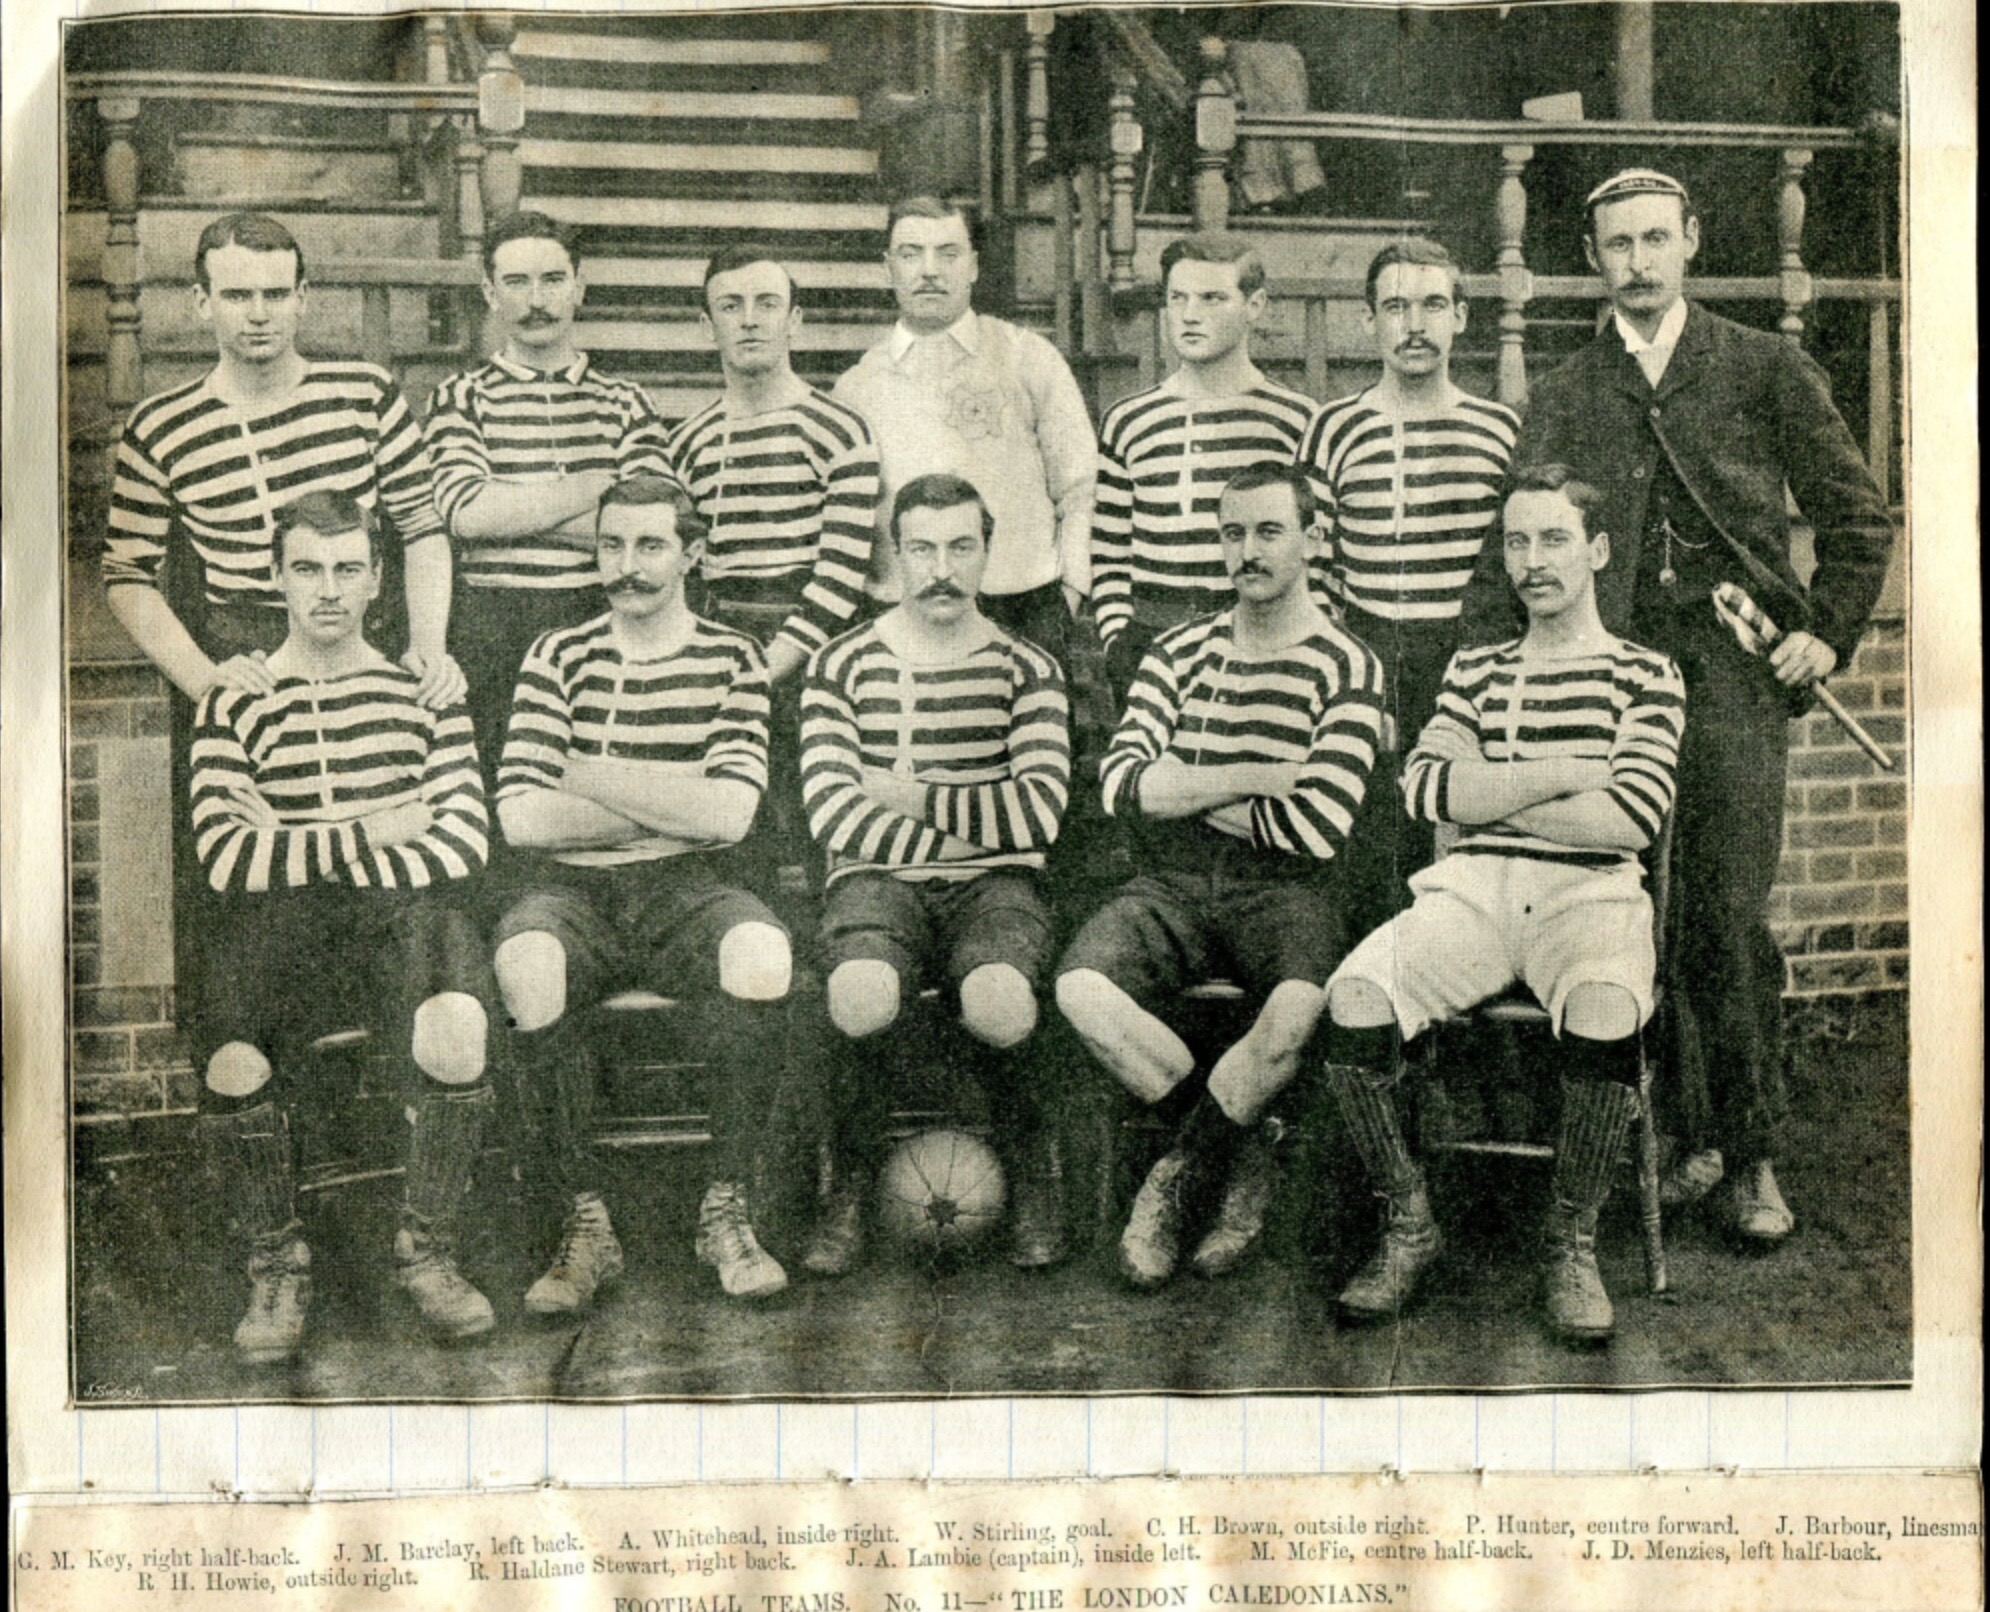 London Caledonians 1894